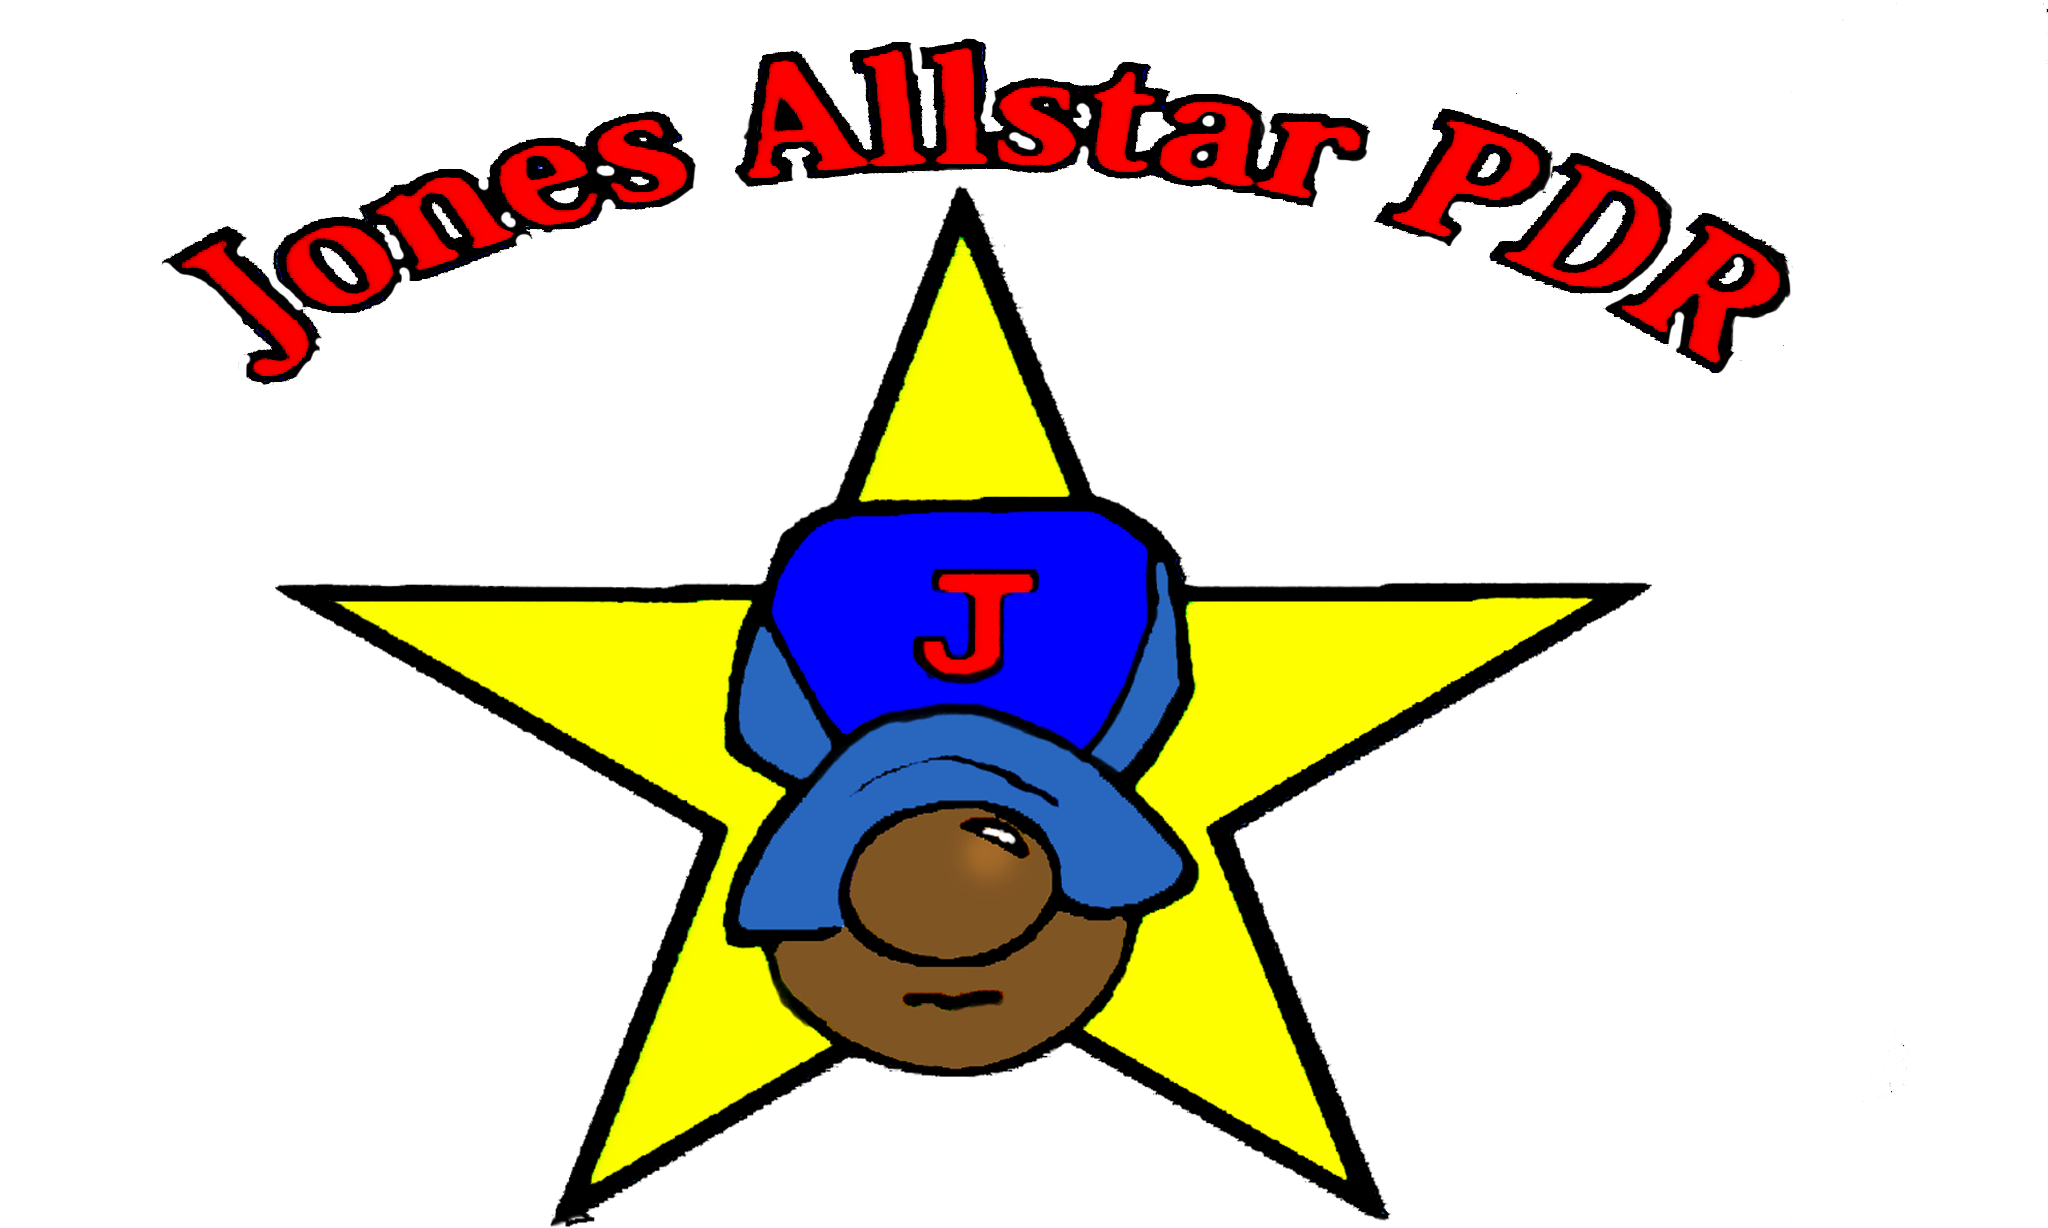 Jones Allstar PDR